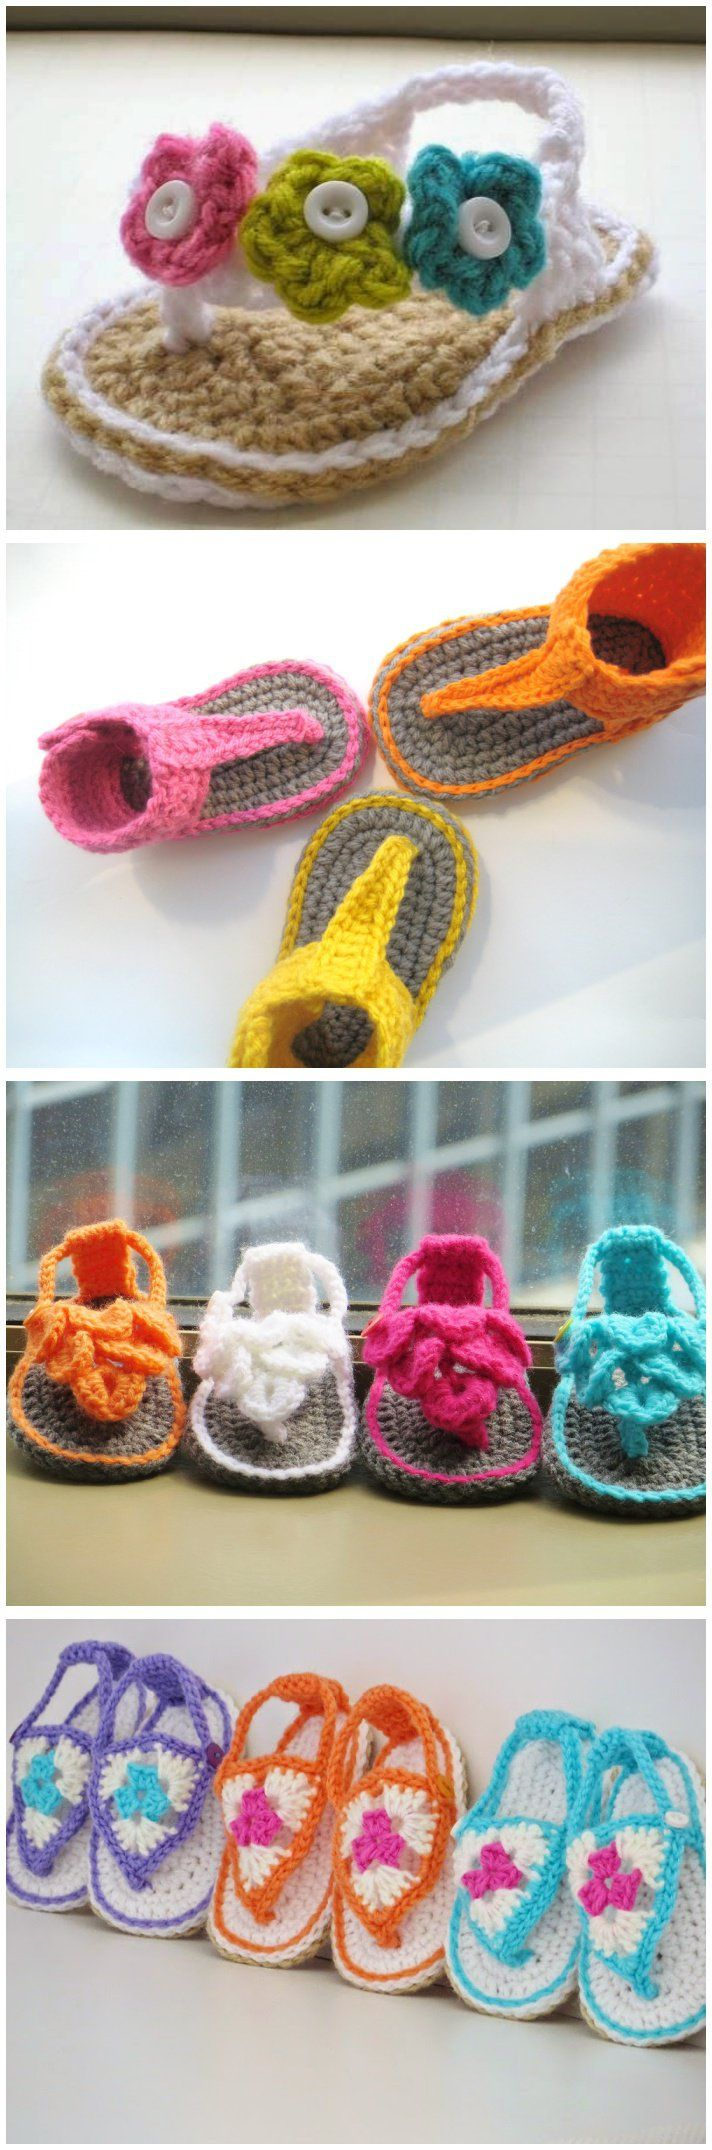 Crochet Baby Flip Flop Sandals with Patterns | Pinterest | Ich freue ...